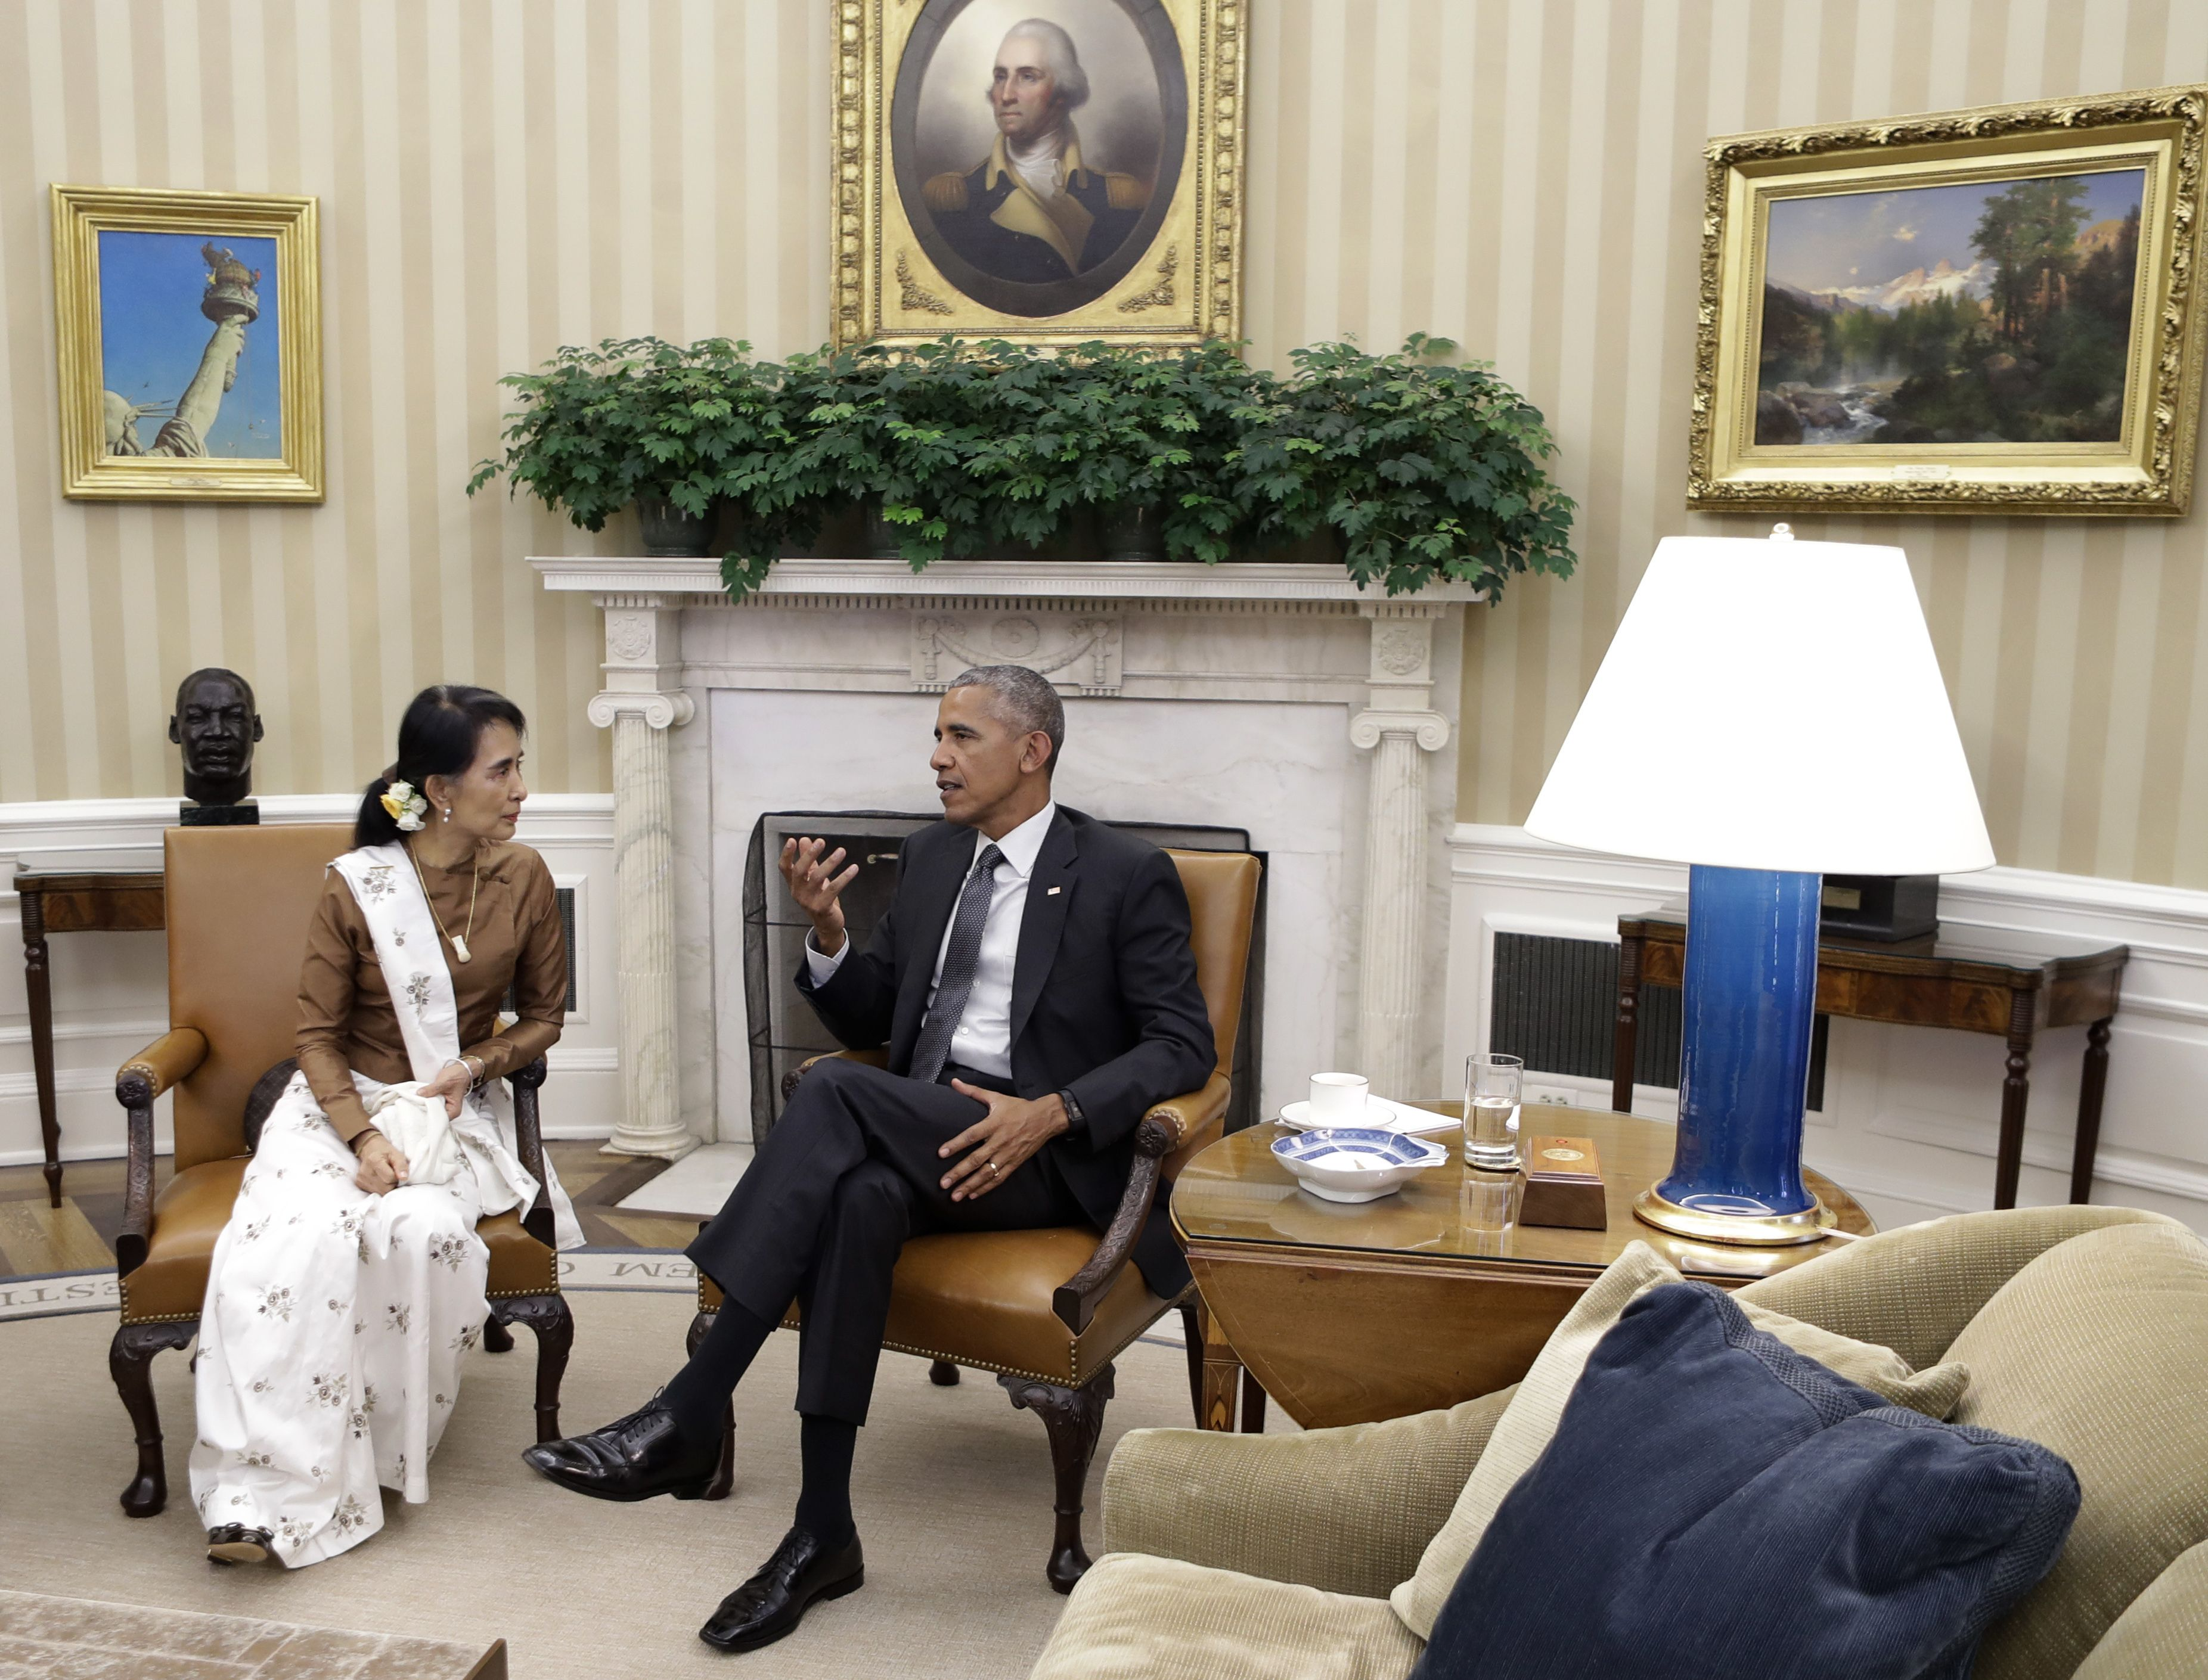 Aung San Suu Kyi meets with President Obama in the Oval Office.